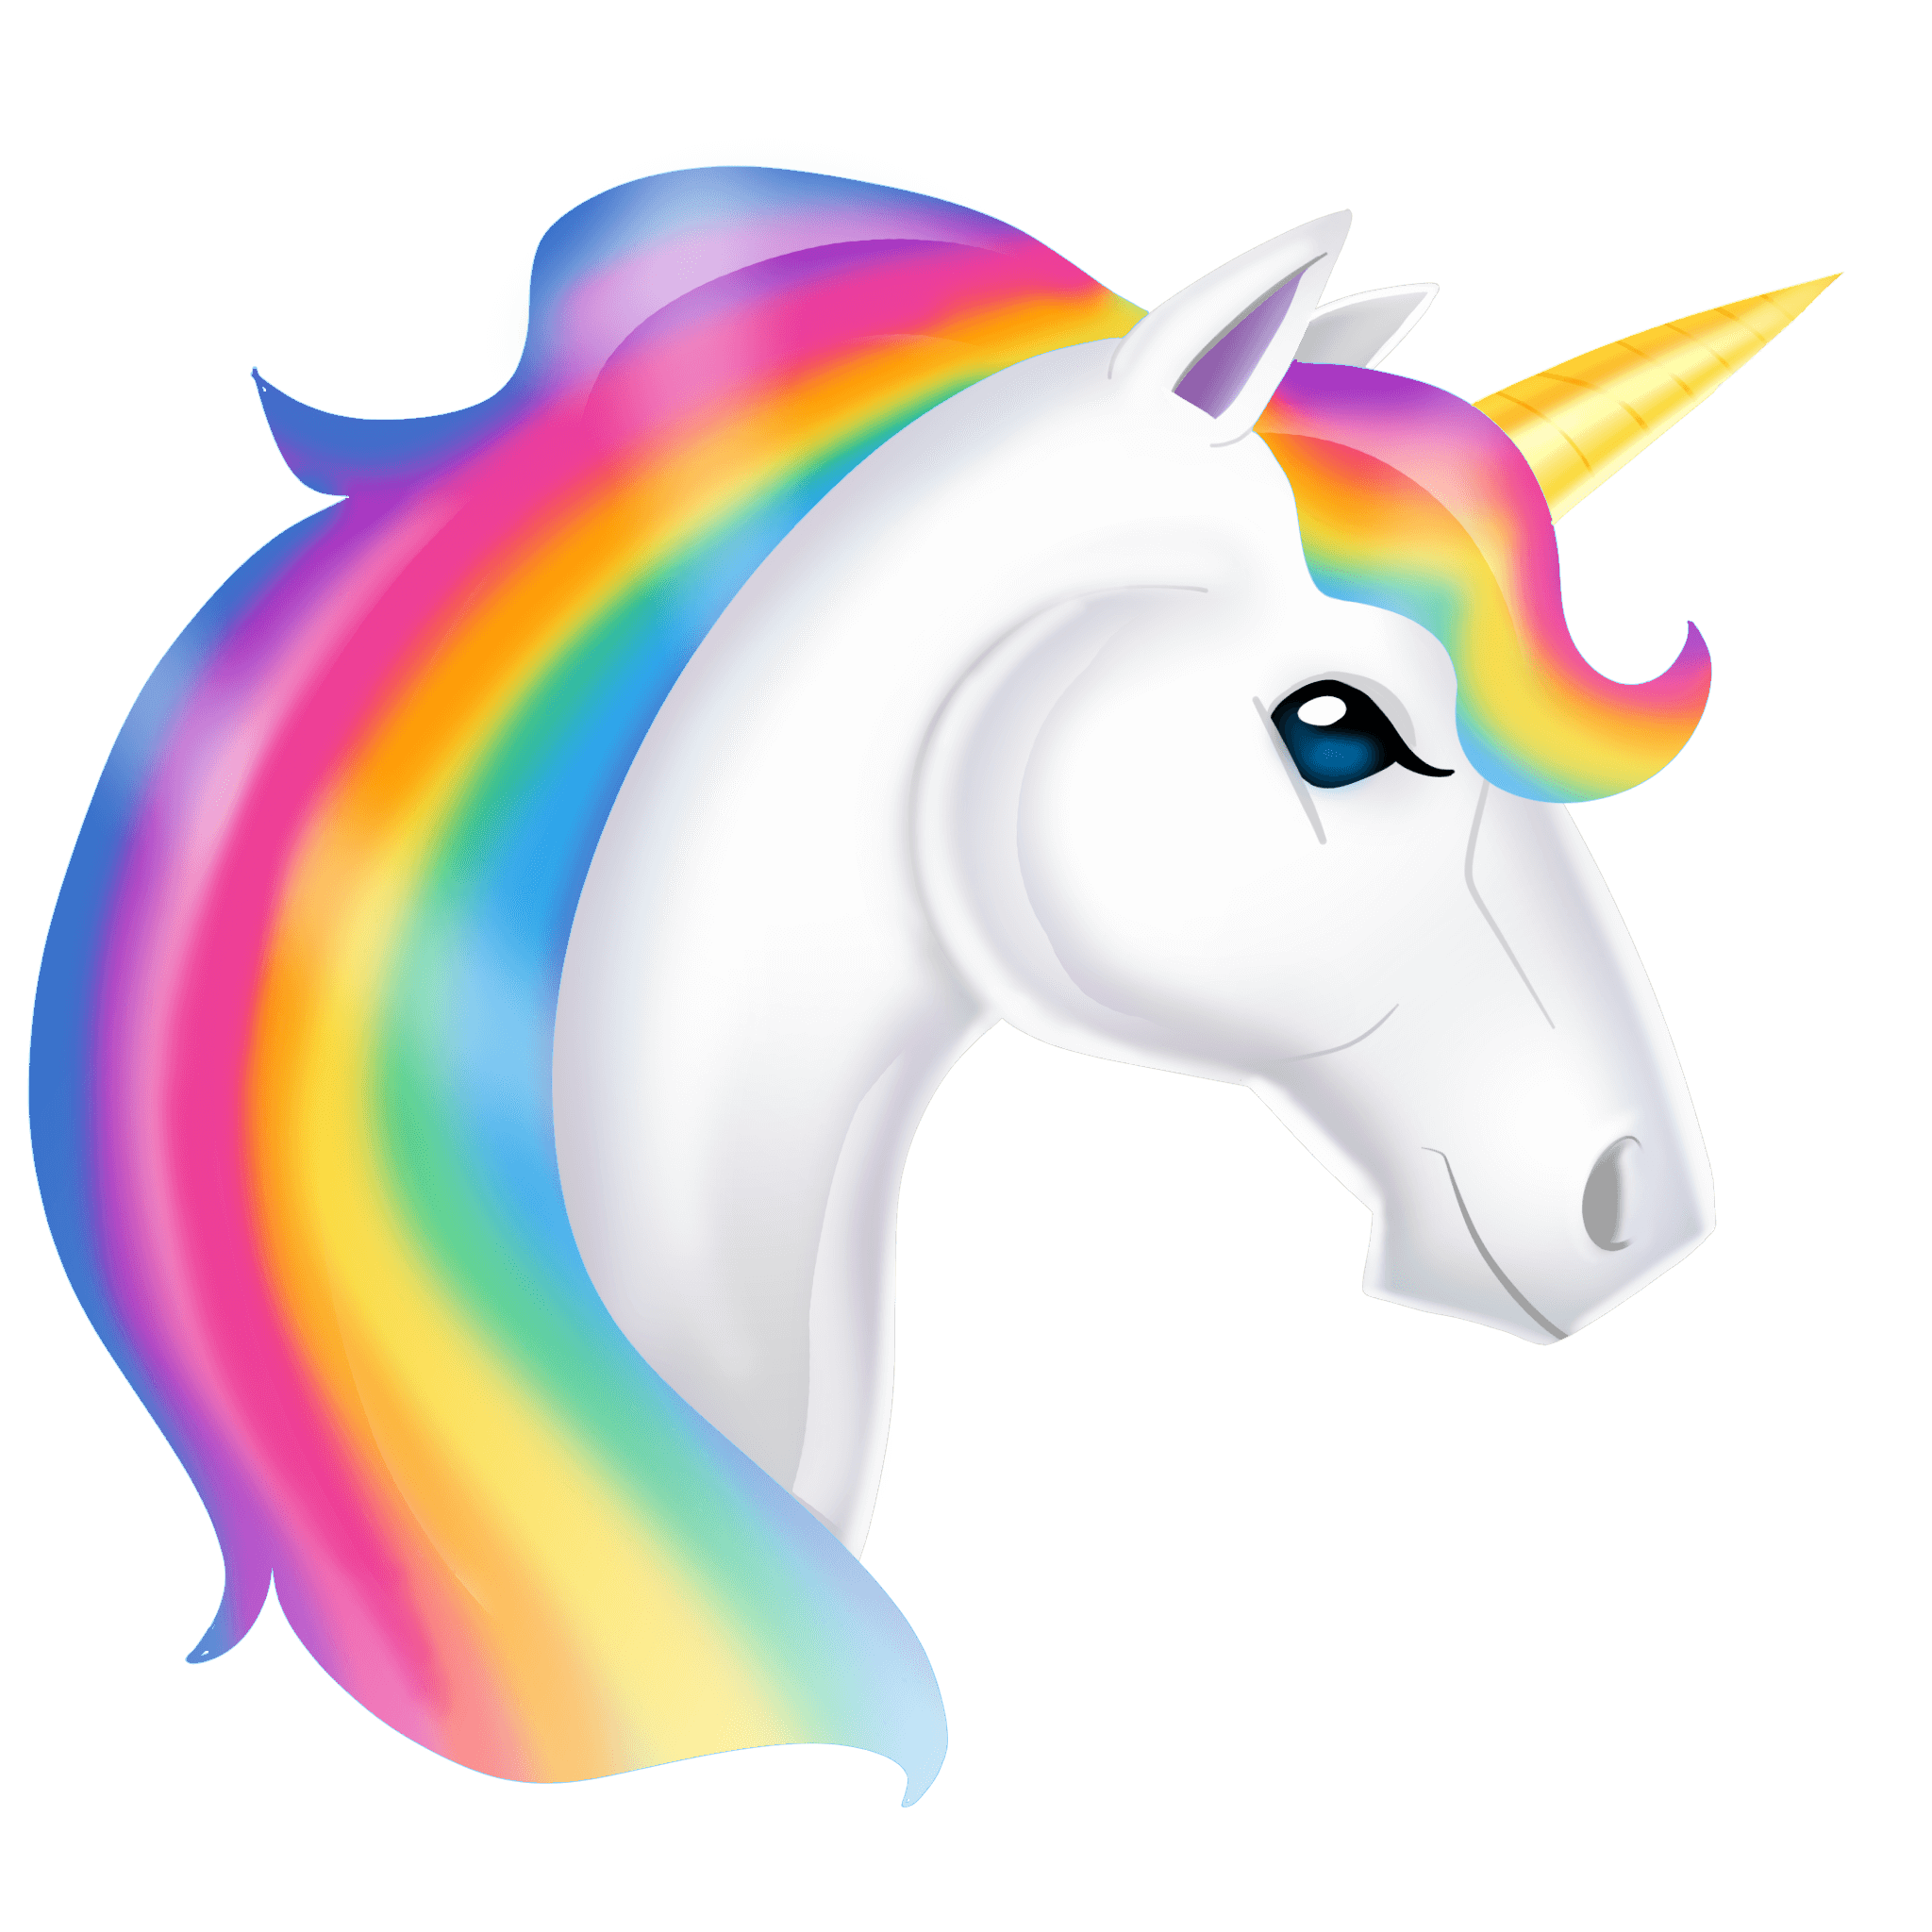 Download Free Unicorn PNG images, download unicorn.png.